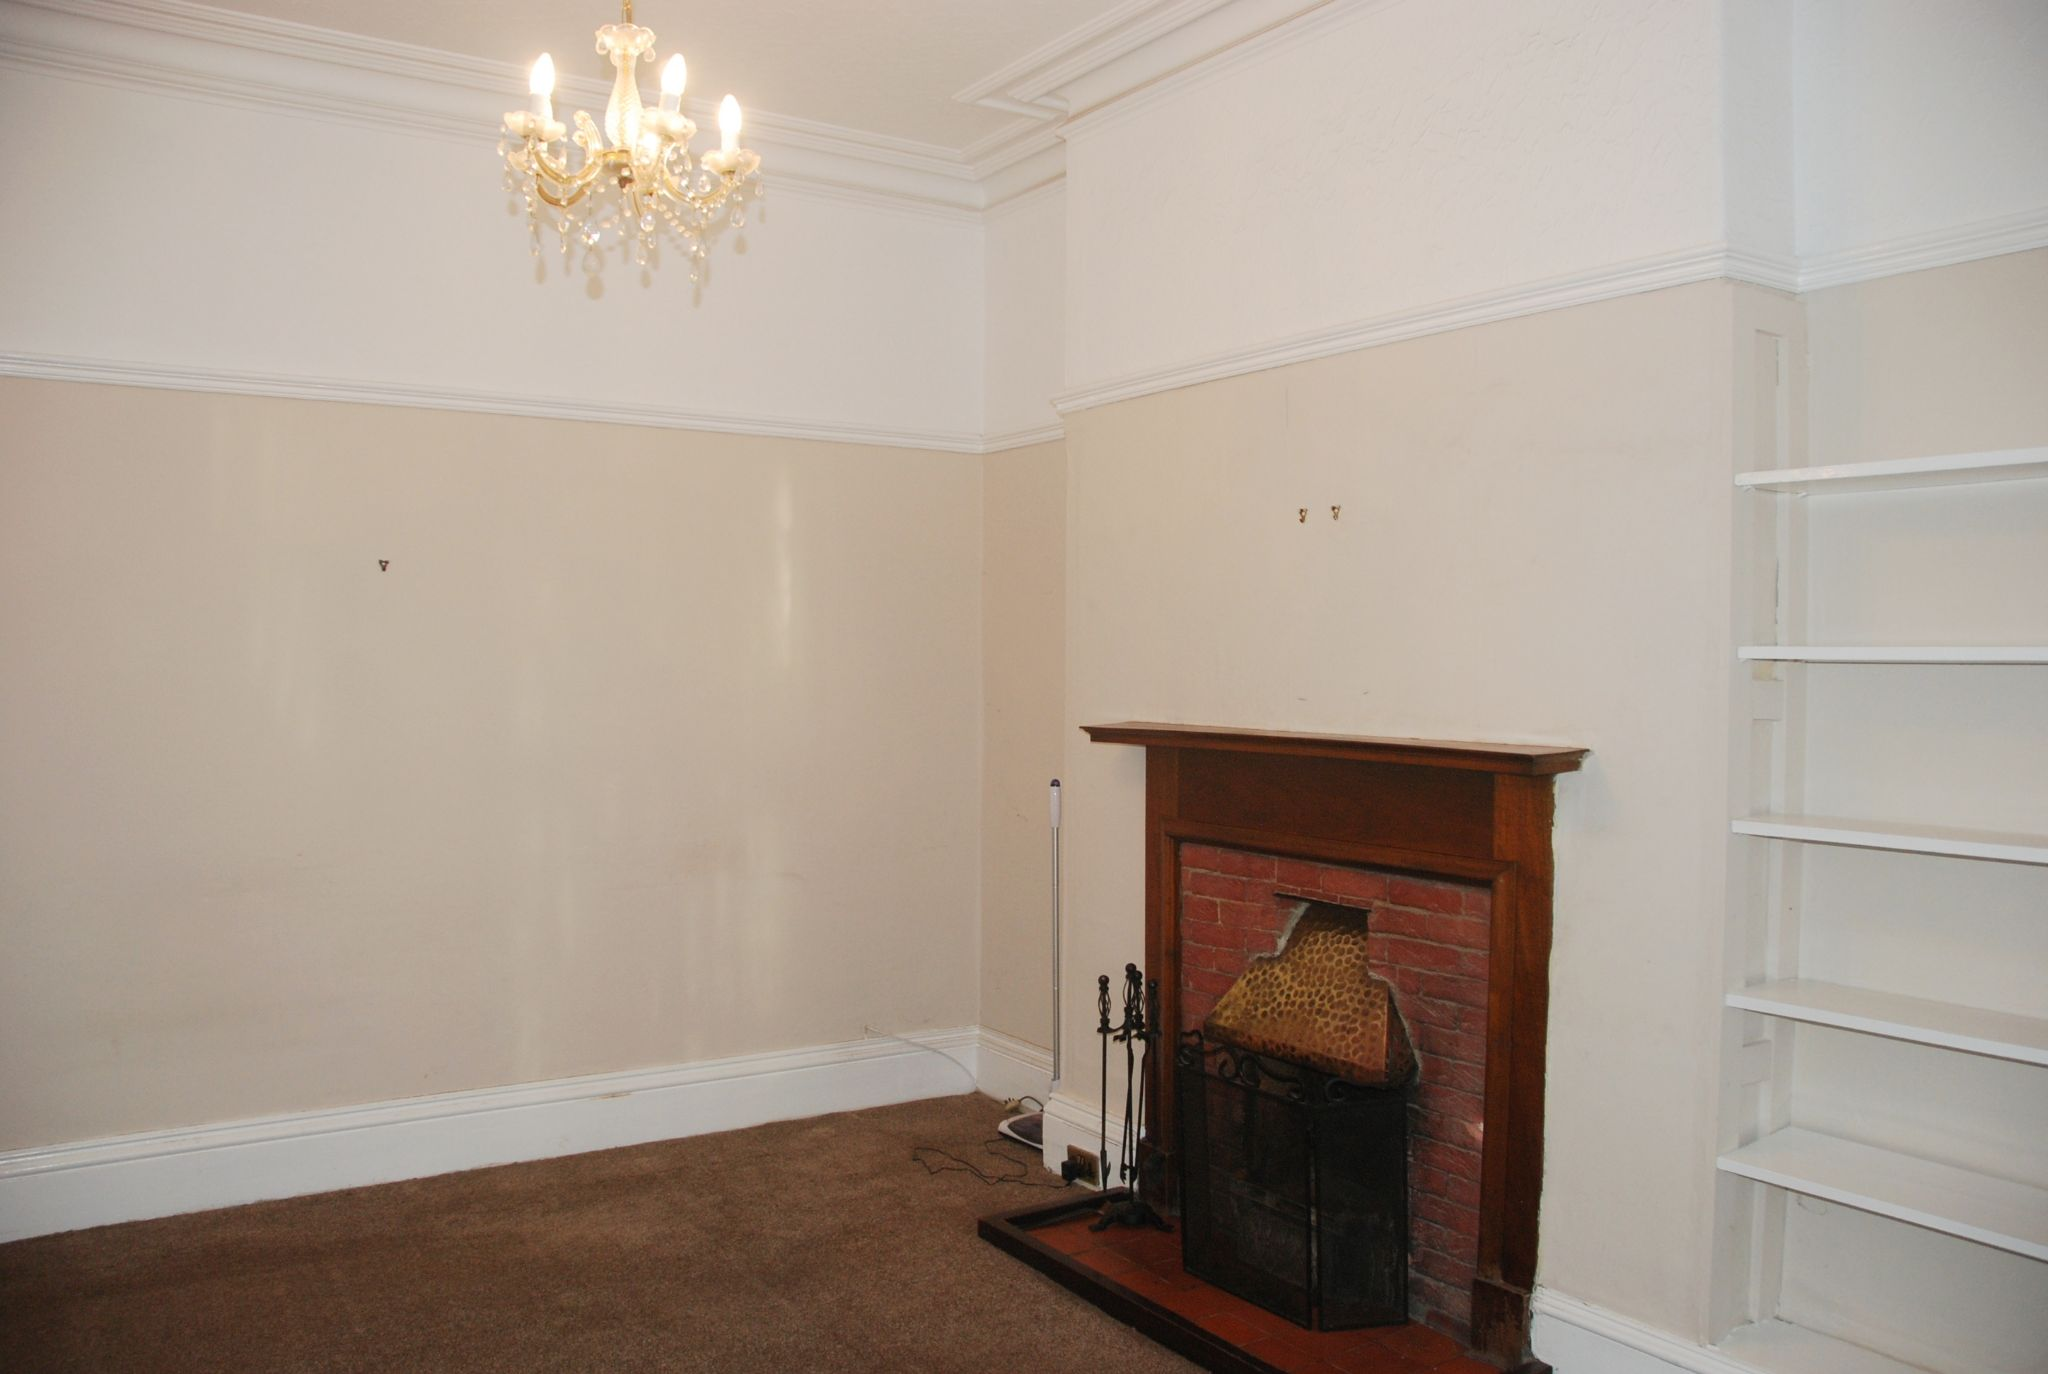 5 bedroom town house For Sale in Douglas - Photograph 22